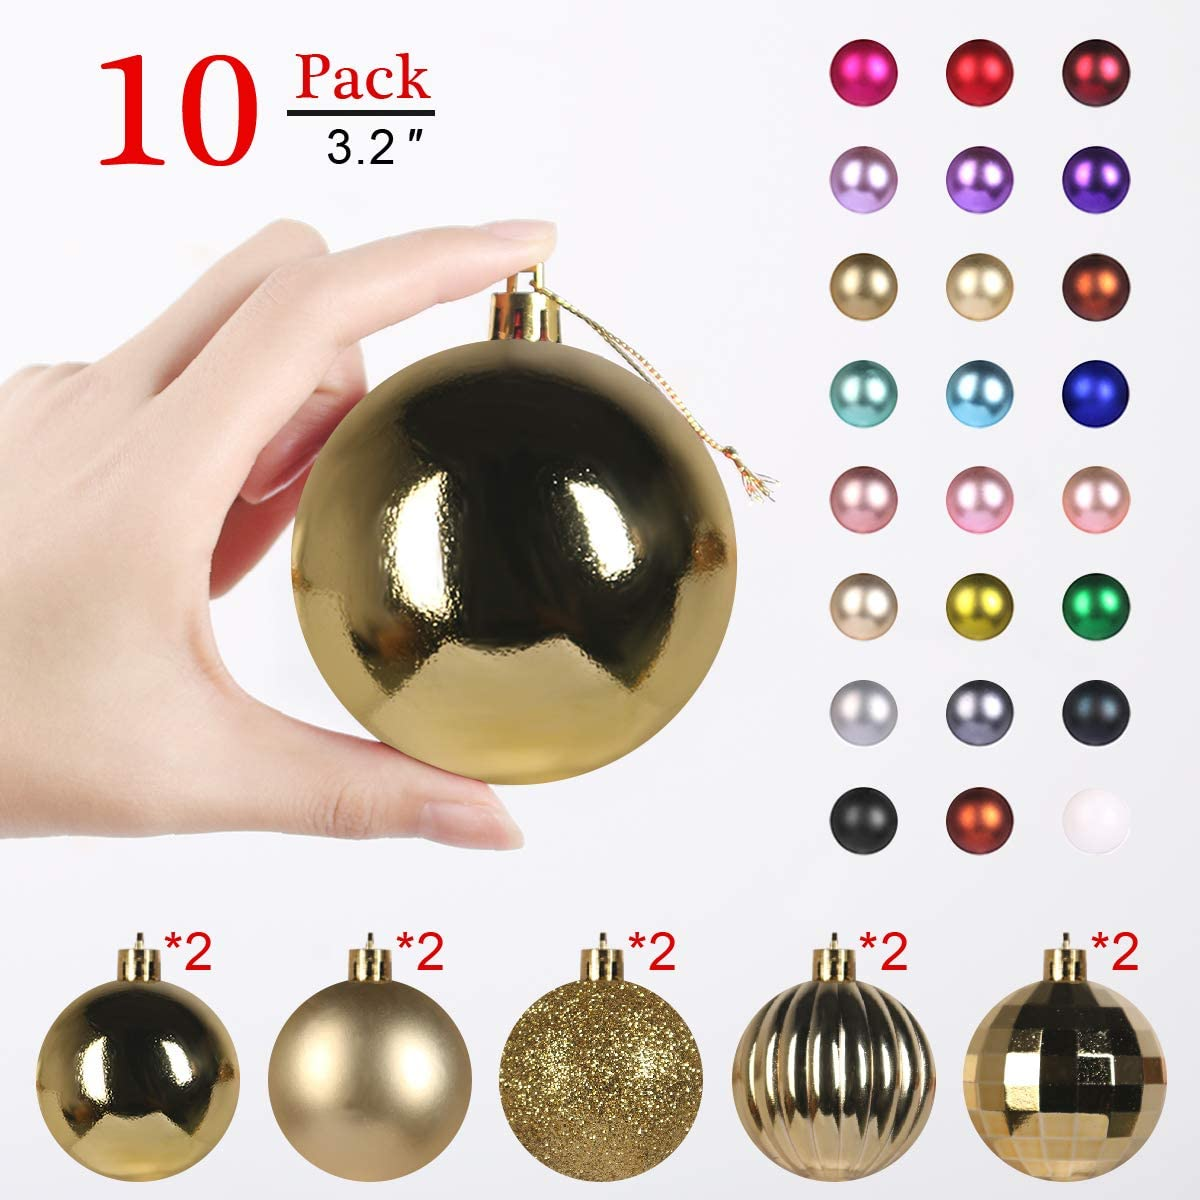 GameXcel Christmas Balls Ornaments for Xmas Tree - Shatterproof Christmas Tree Decorations Large Hanging Ball Gold3.2 x 10 Pack